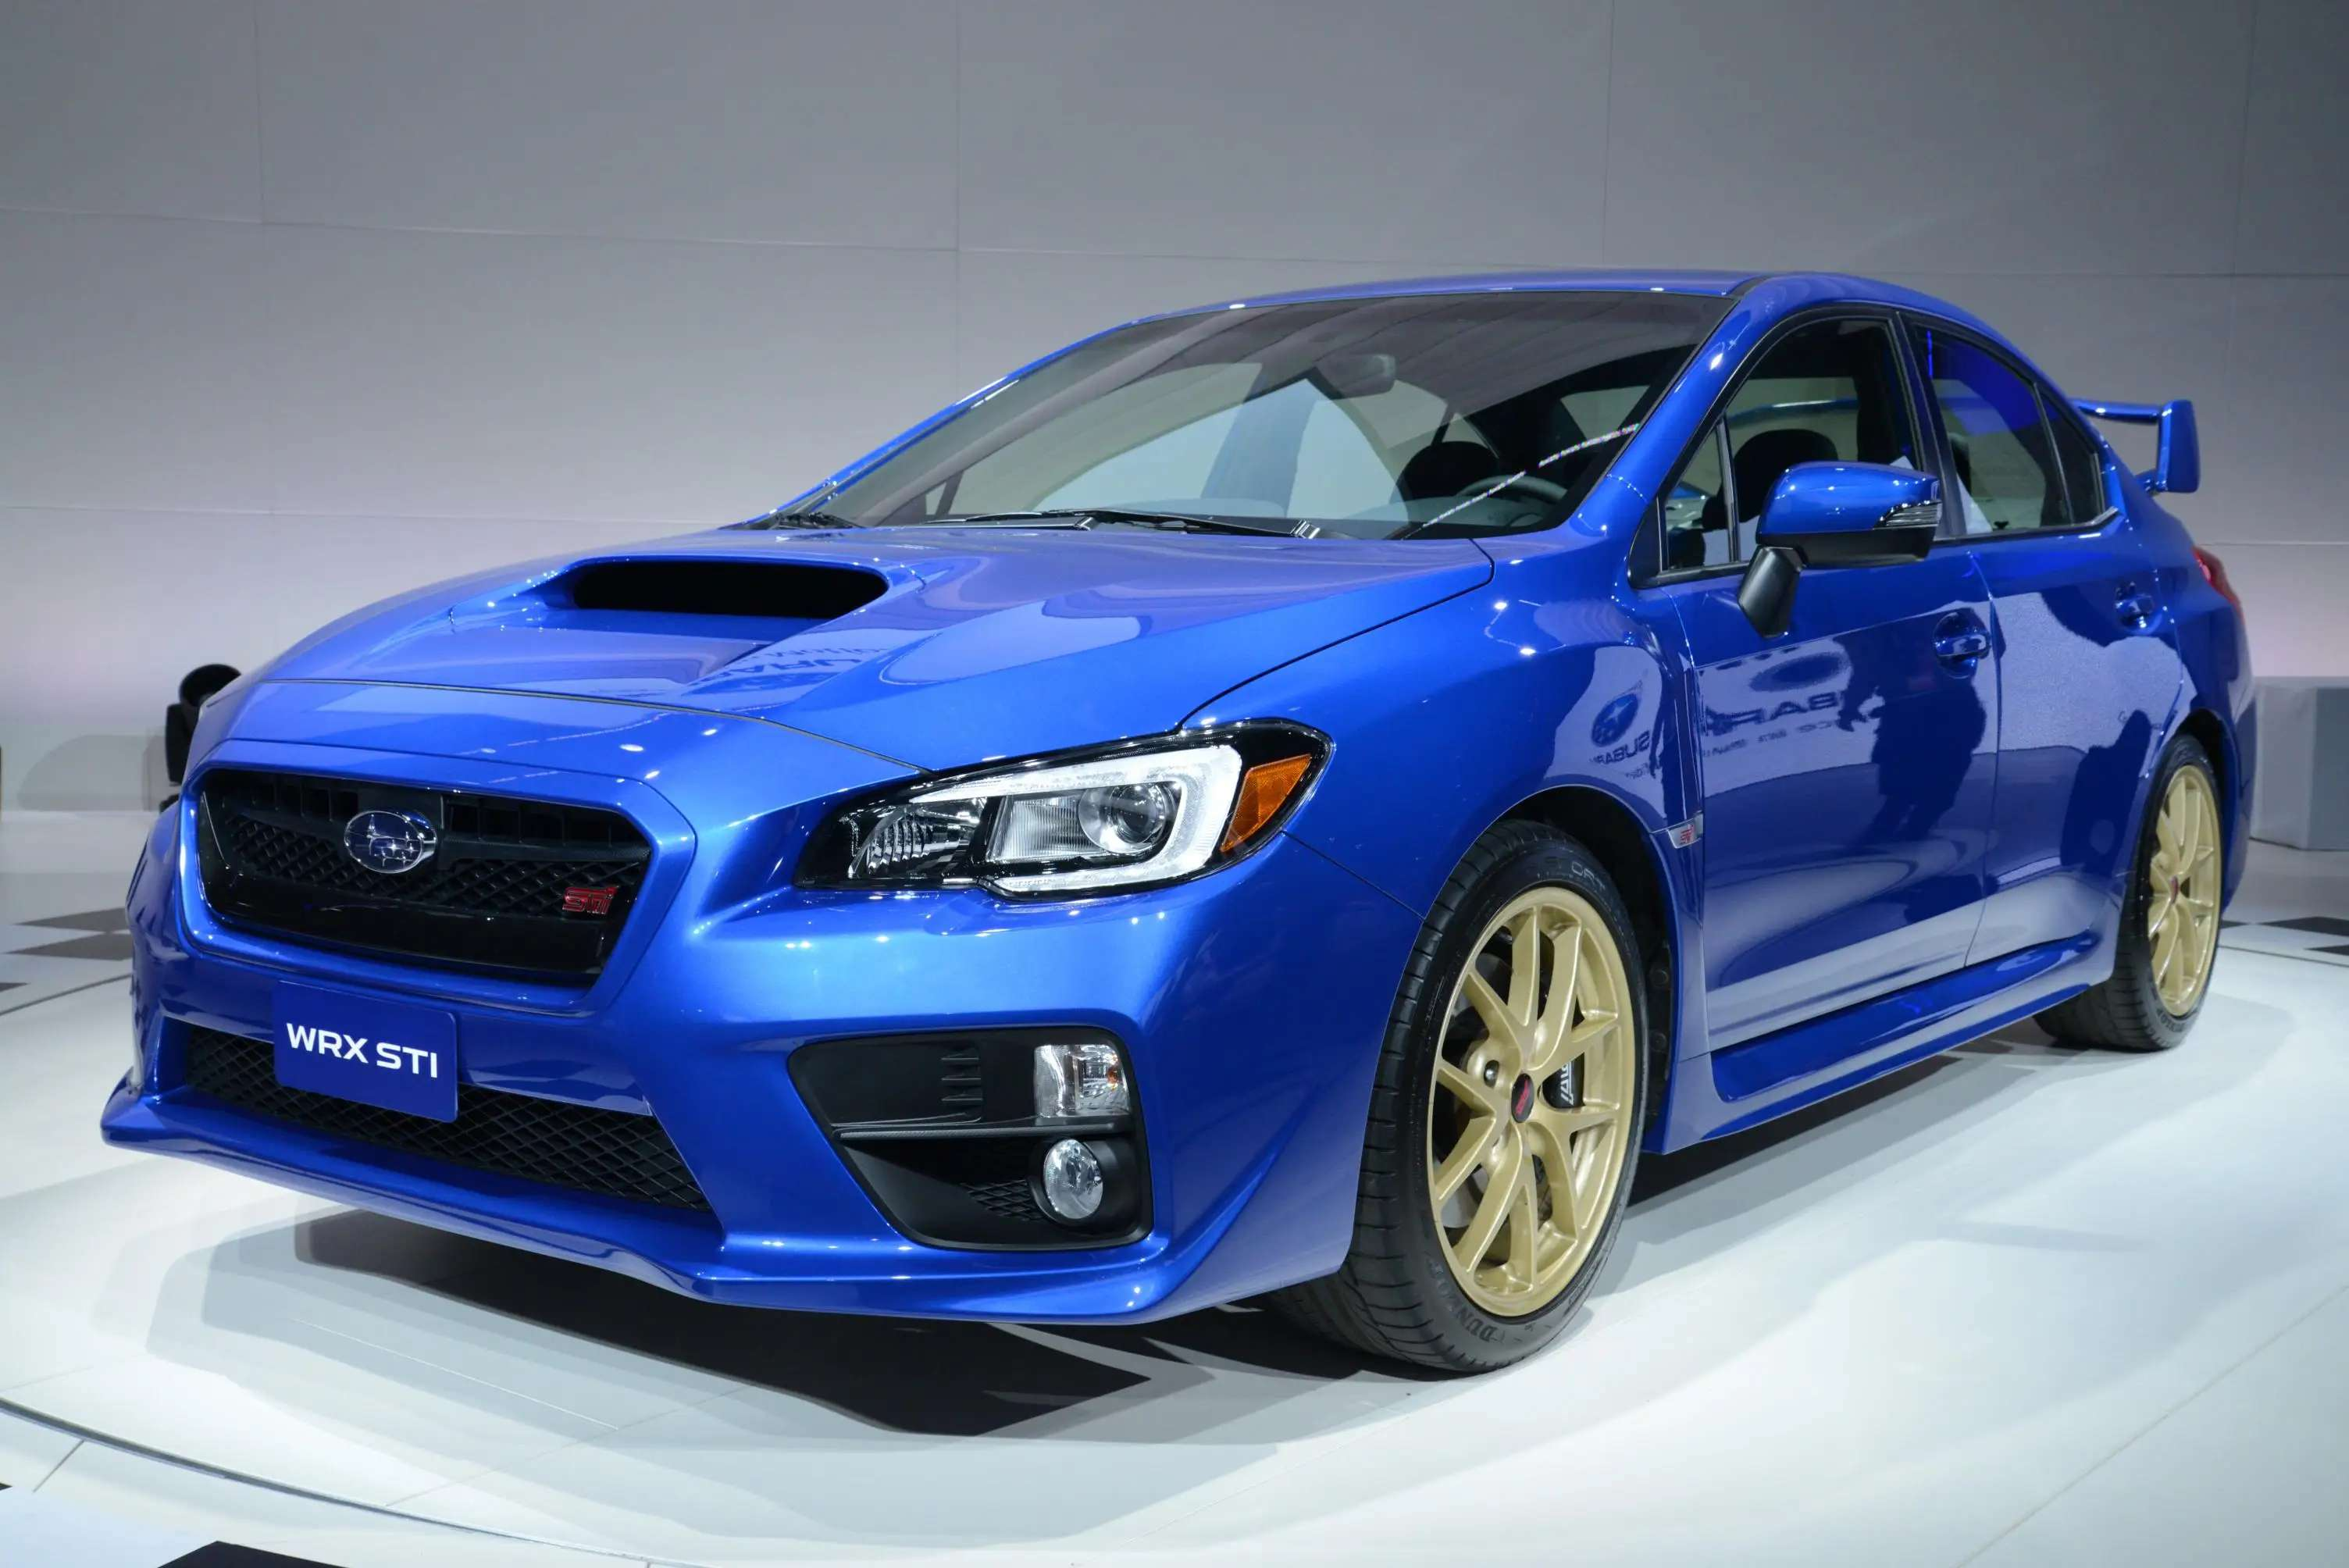 If you like the WRX and horsepower, you'll love the 2015 WRX STI. Subaru made the special version more aerodynamic and gave it a turbocharged 2.5-liter engine. In good news for enthusiasts, it comes with a manual transmission only.